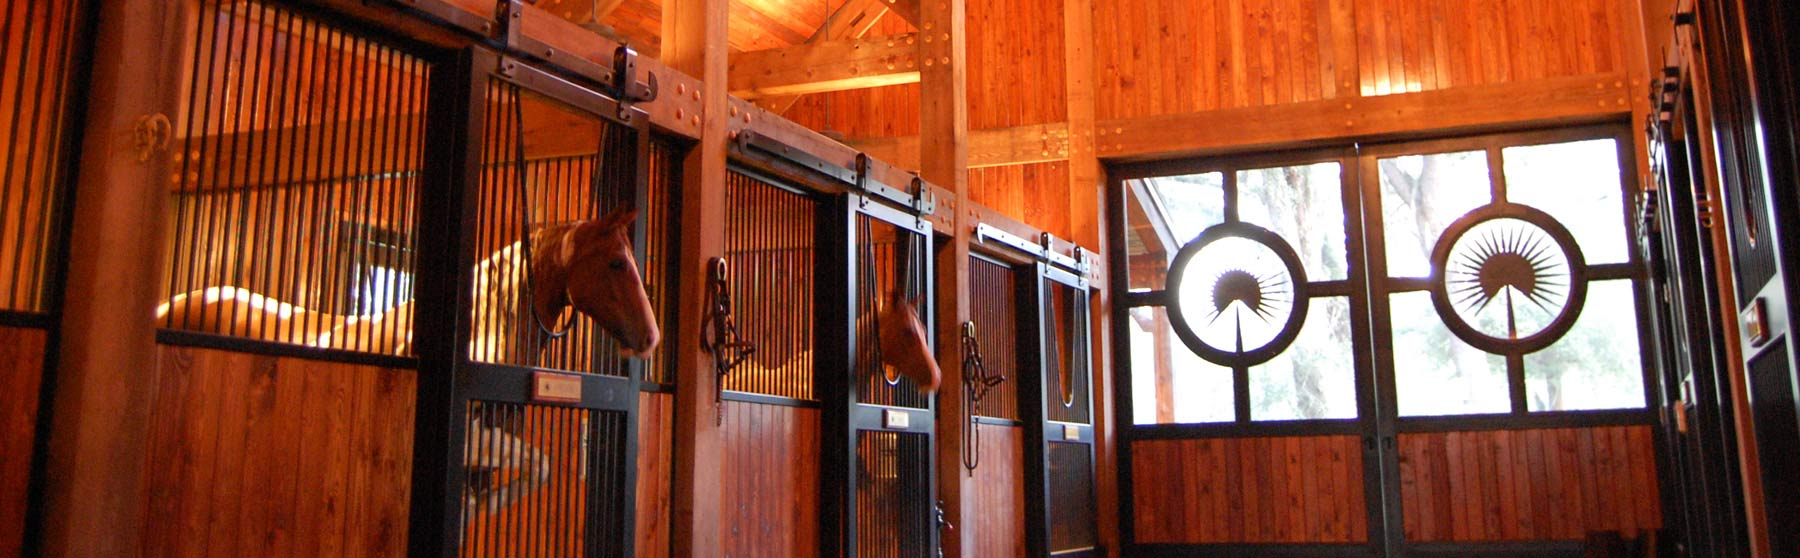 Horse Stalls & Horse Stalls - Barn Doors - Stall Fronts - Equine Equipment